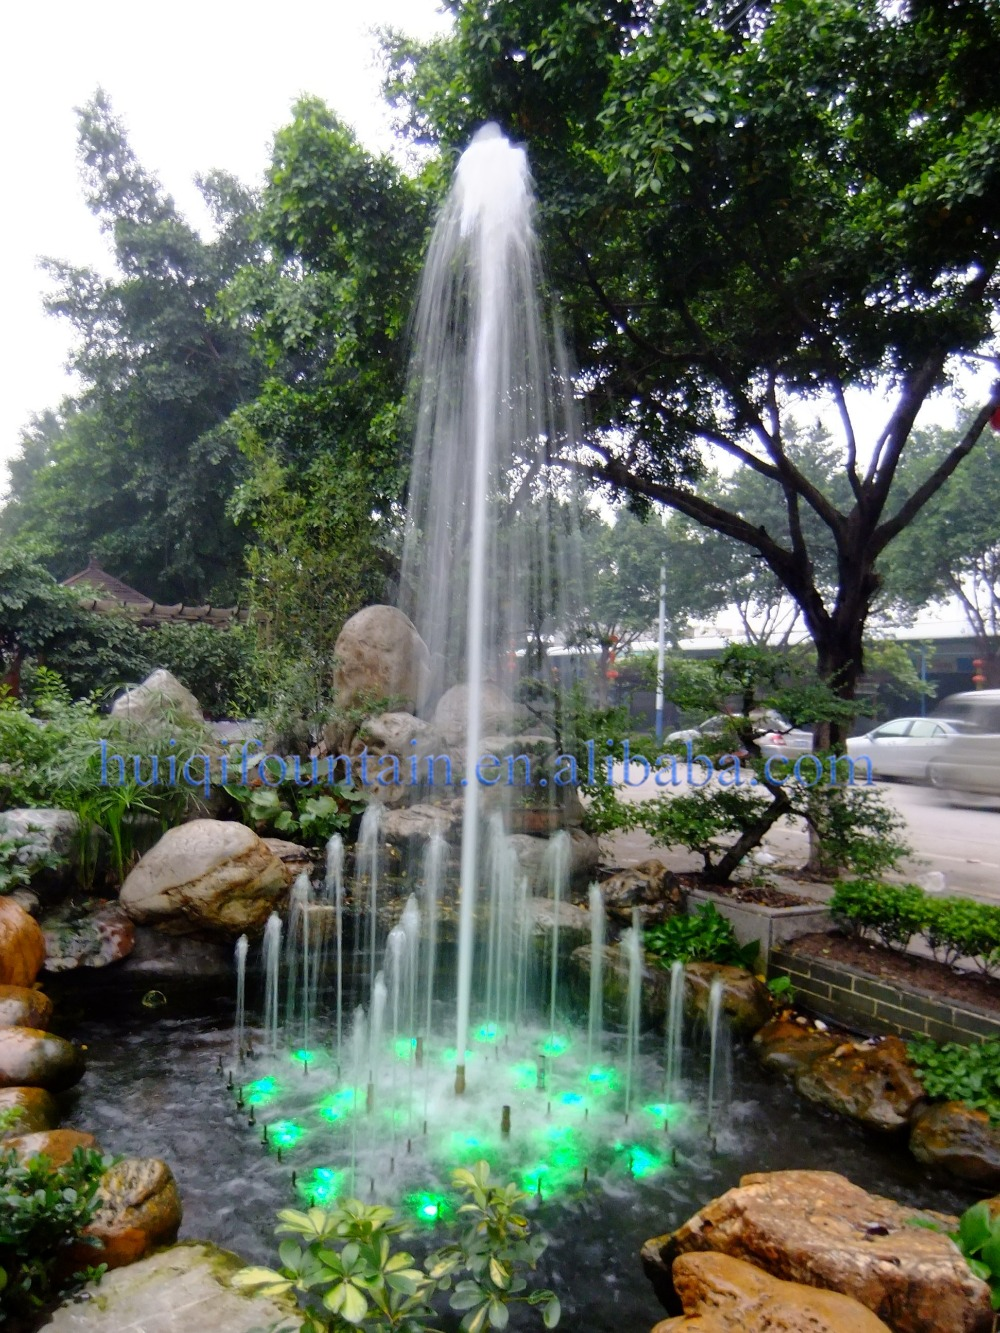 Customized large angel outdoor water umbrella fountains for Pond fountains for sale